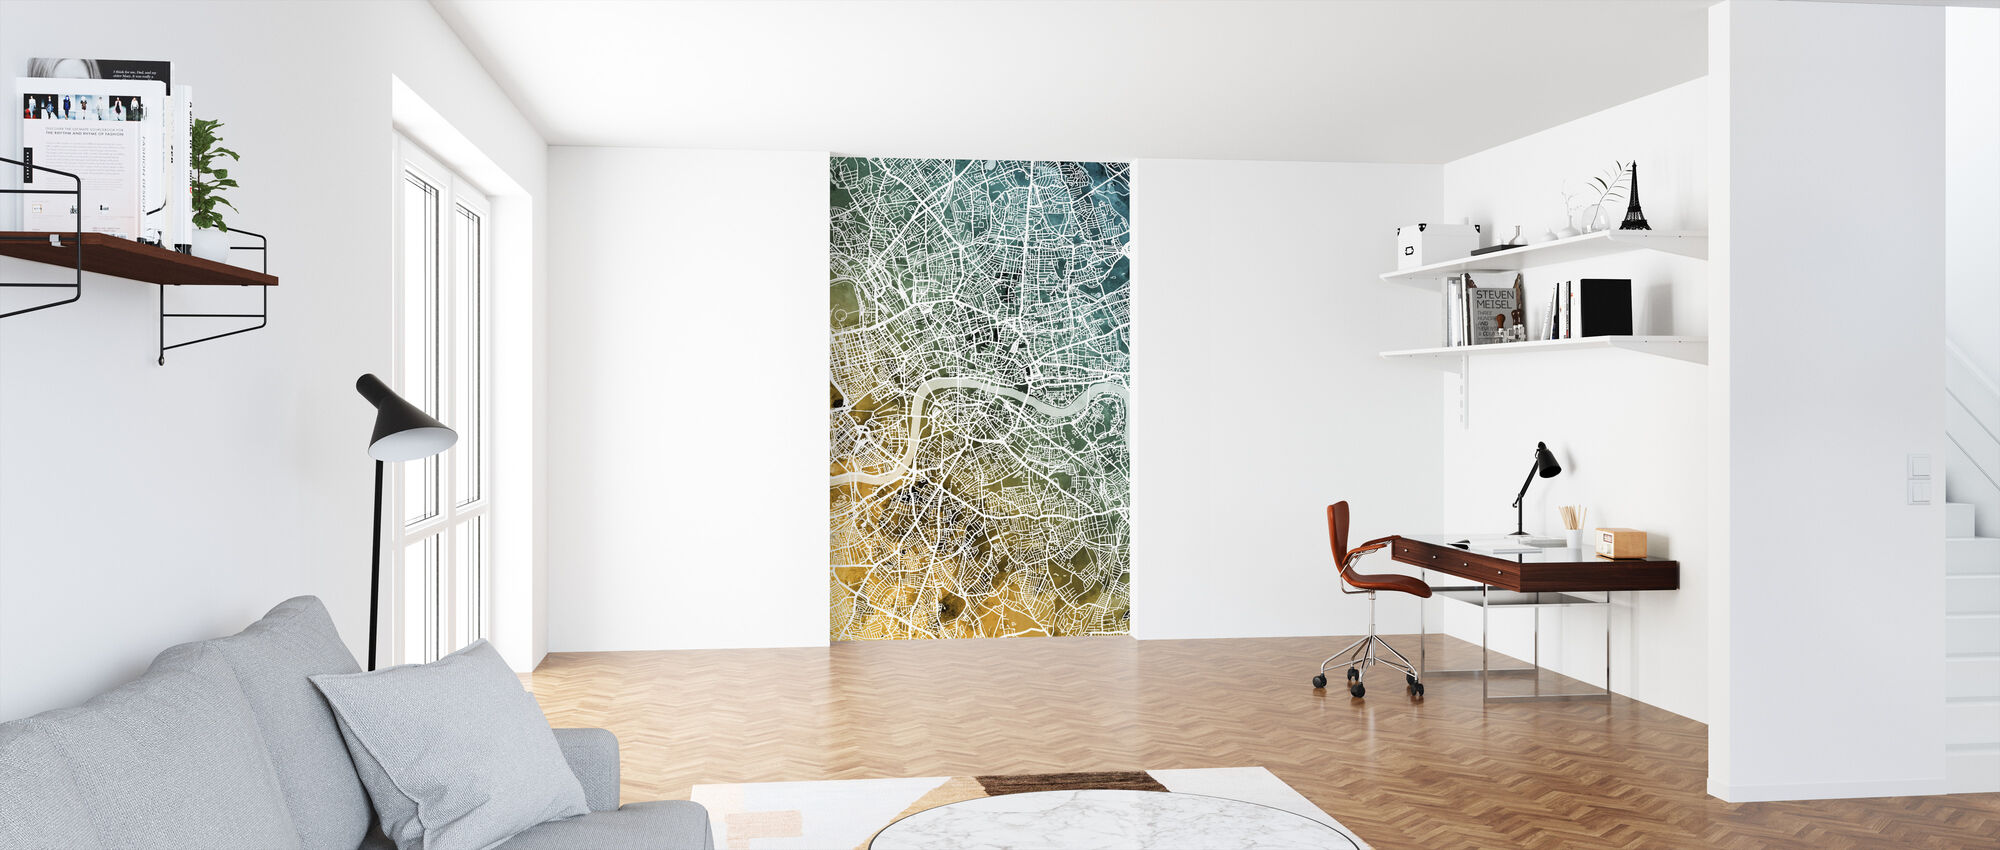 London England Street Map - Wallpaper - Office